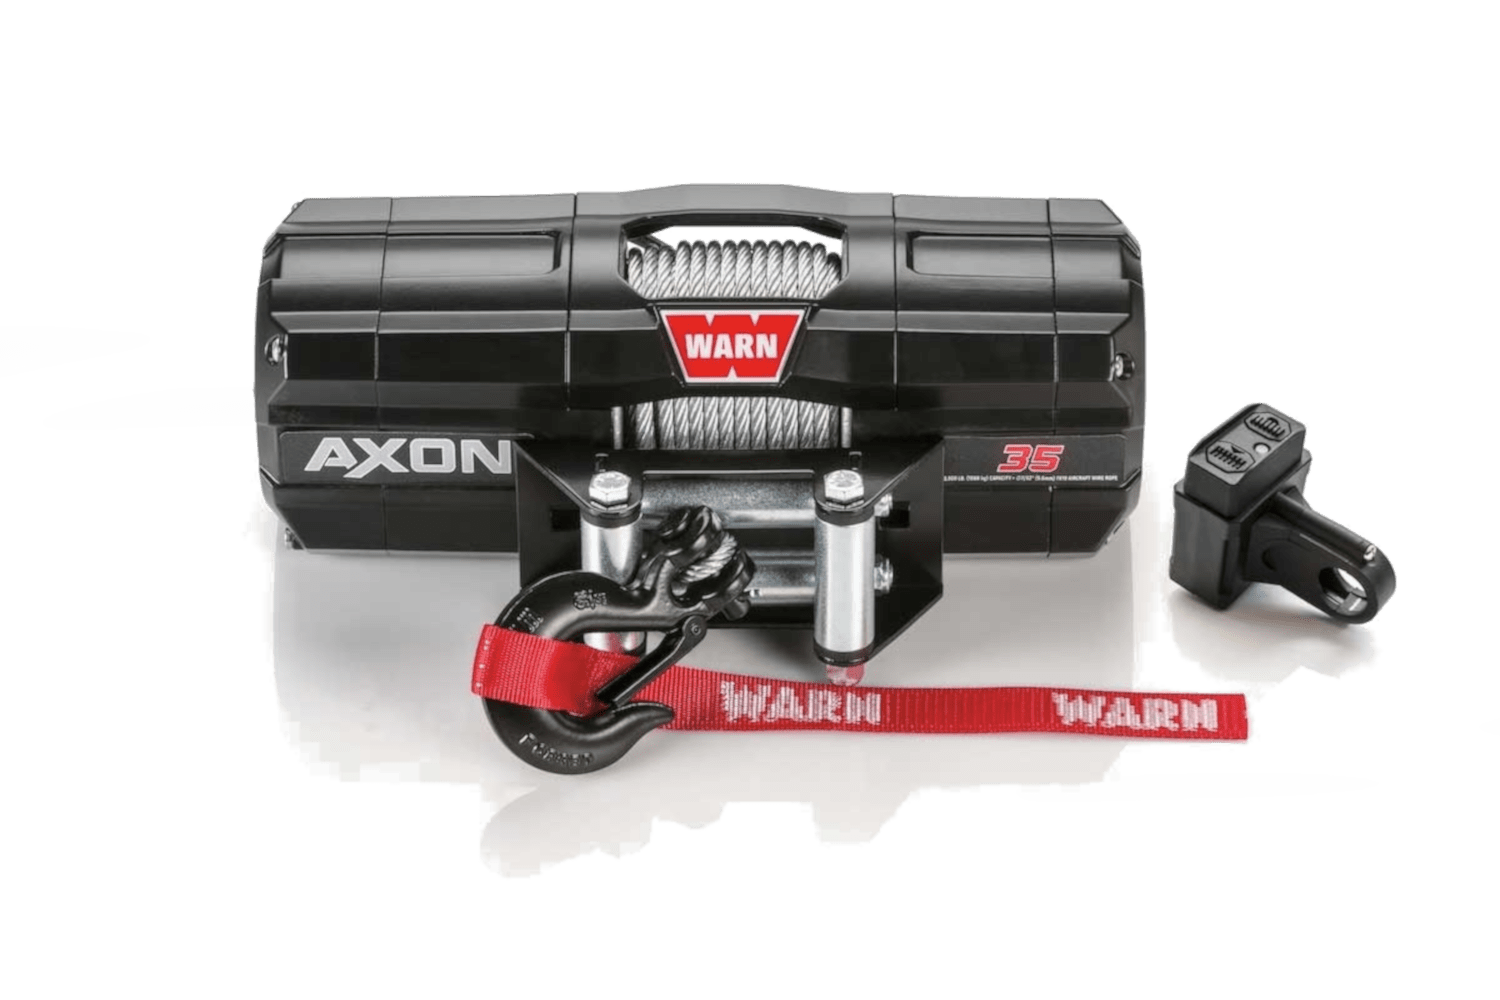 warn powersport winches axon 101135 warn powersports